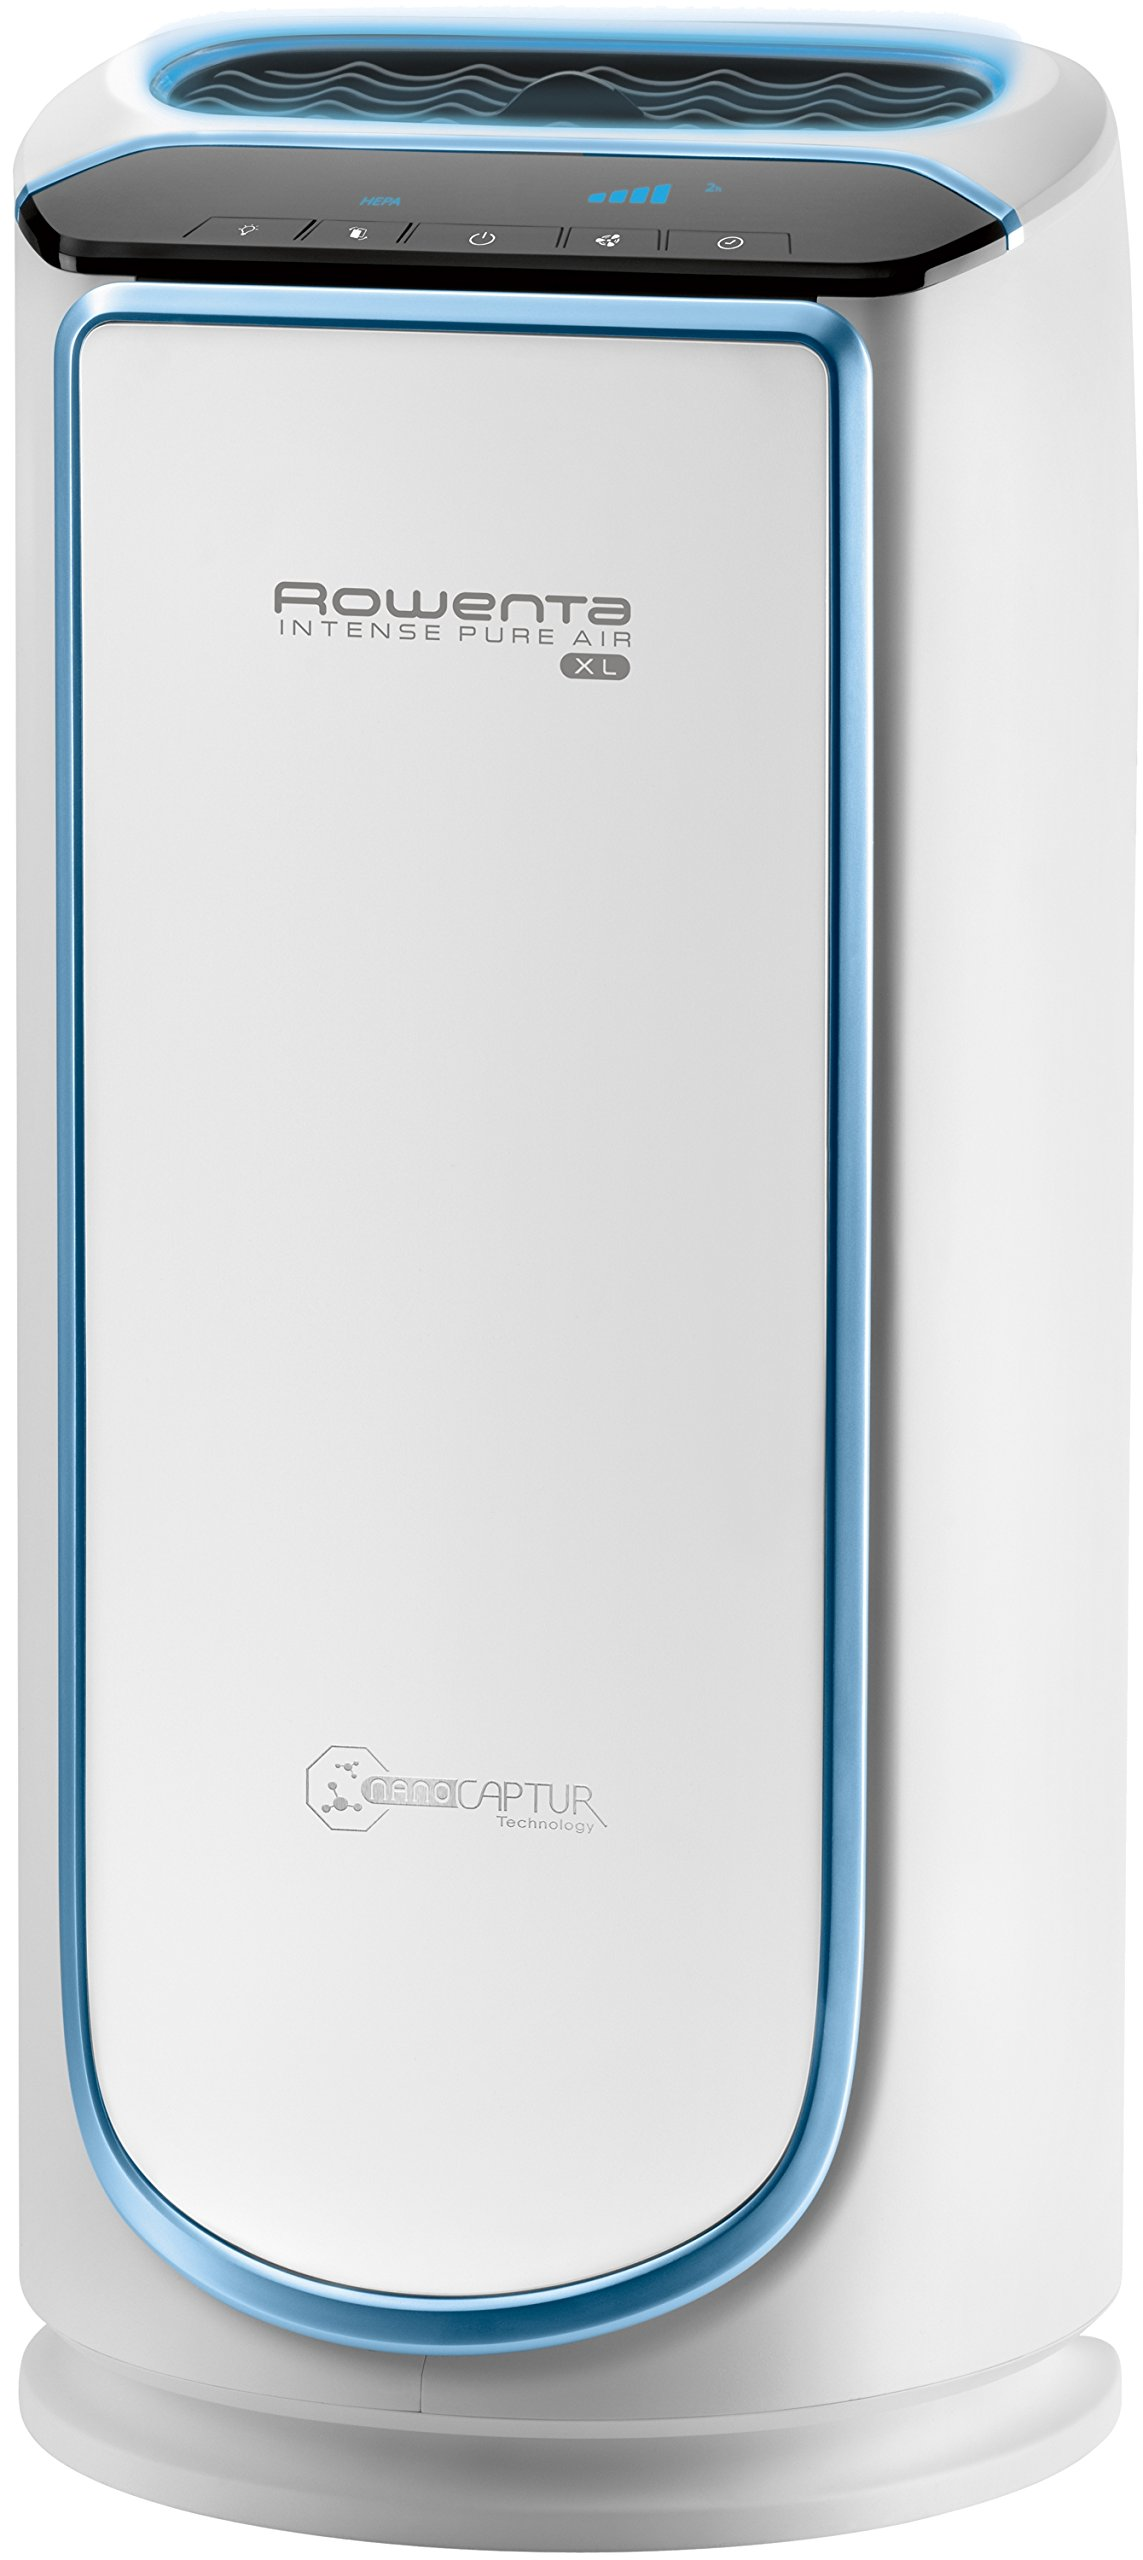 Rowenta PU6010 Intense Pure Air 800-Square Feet Air Purifier with 4-Filters Including HEPA Filter and Formaldehyde-Free Technology and Odor Eliminator, 29-Inch, White